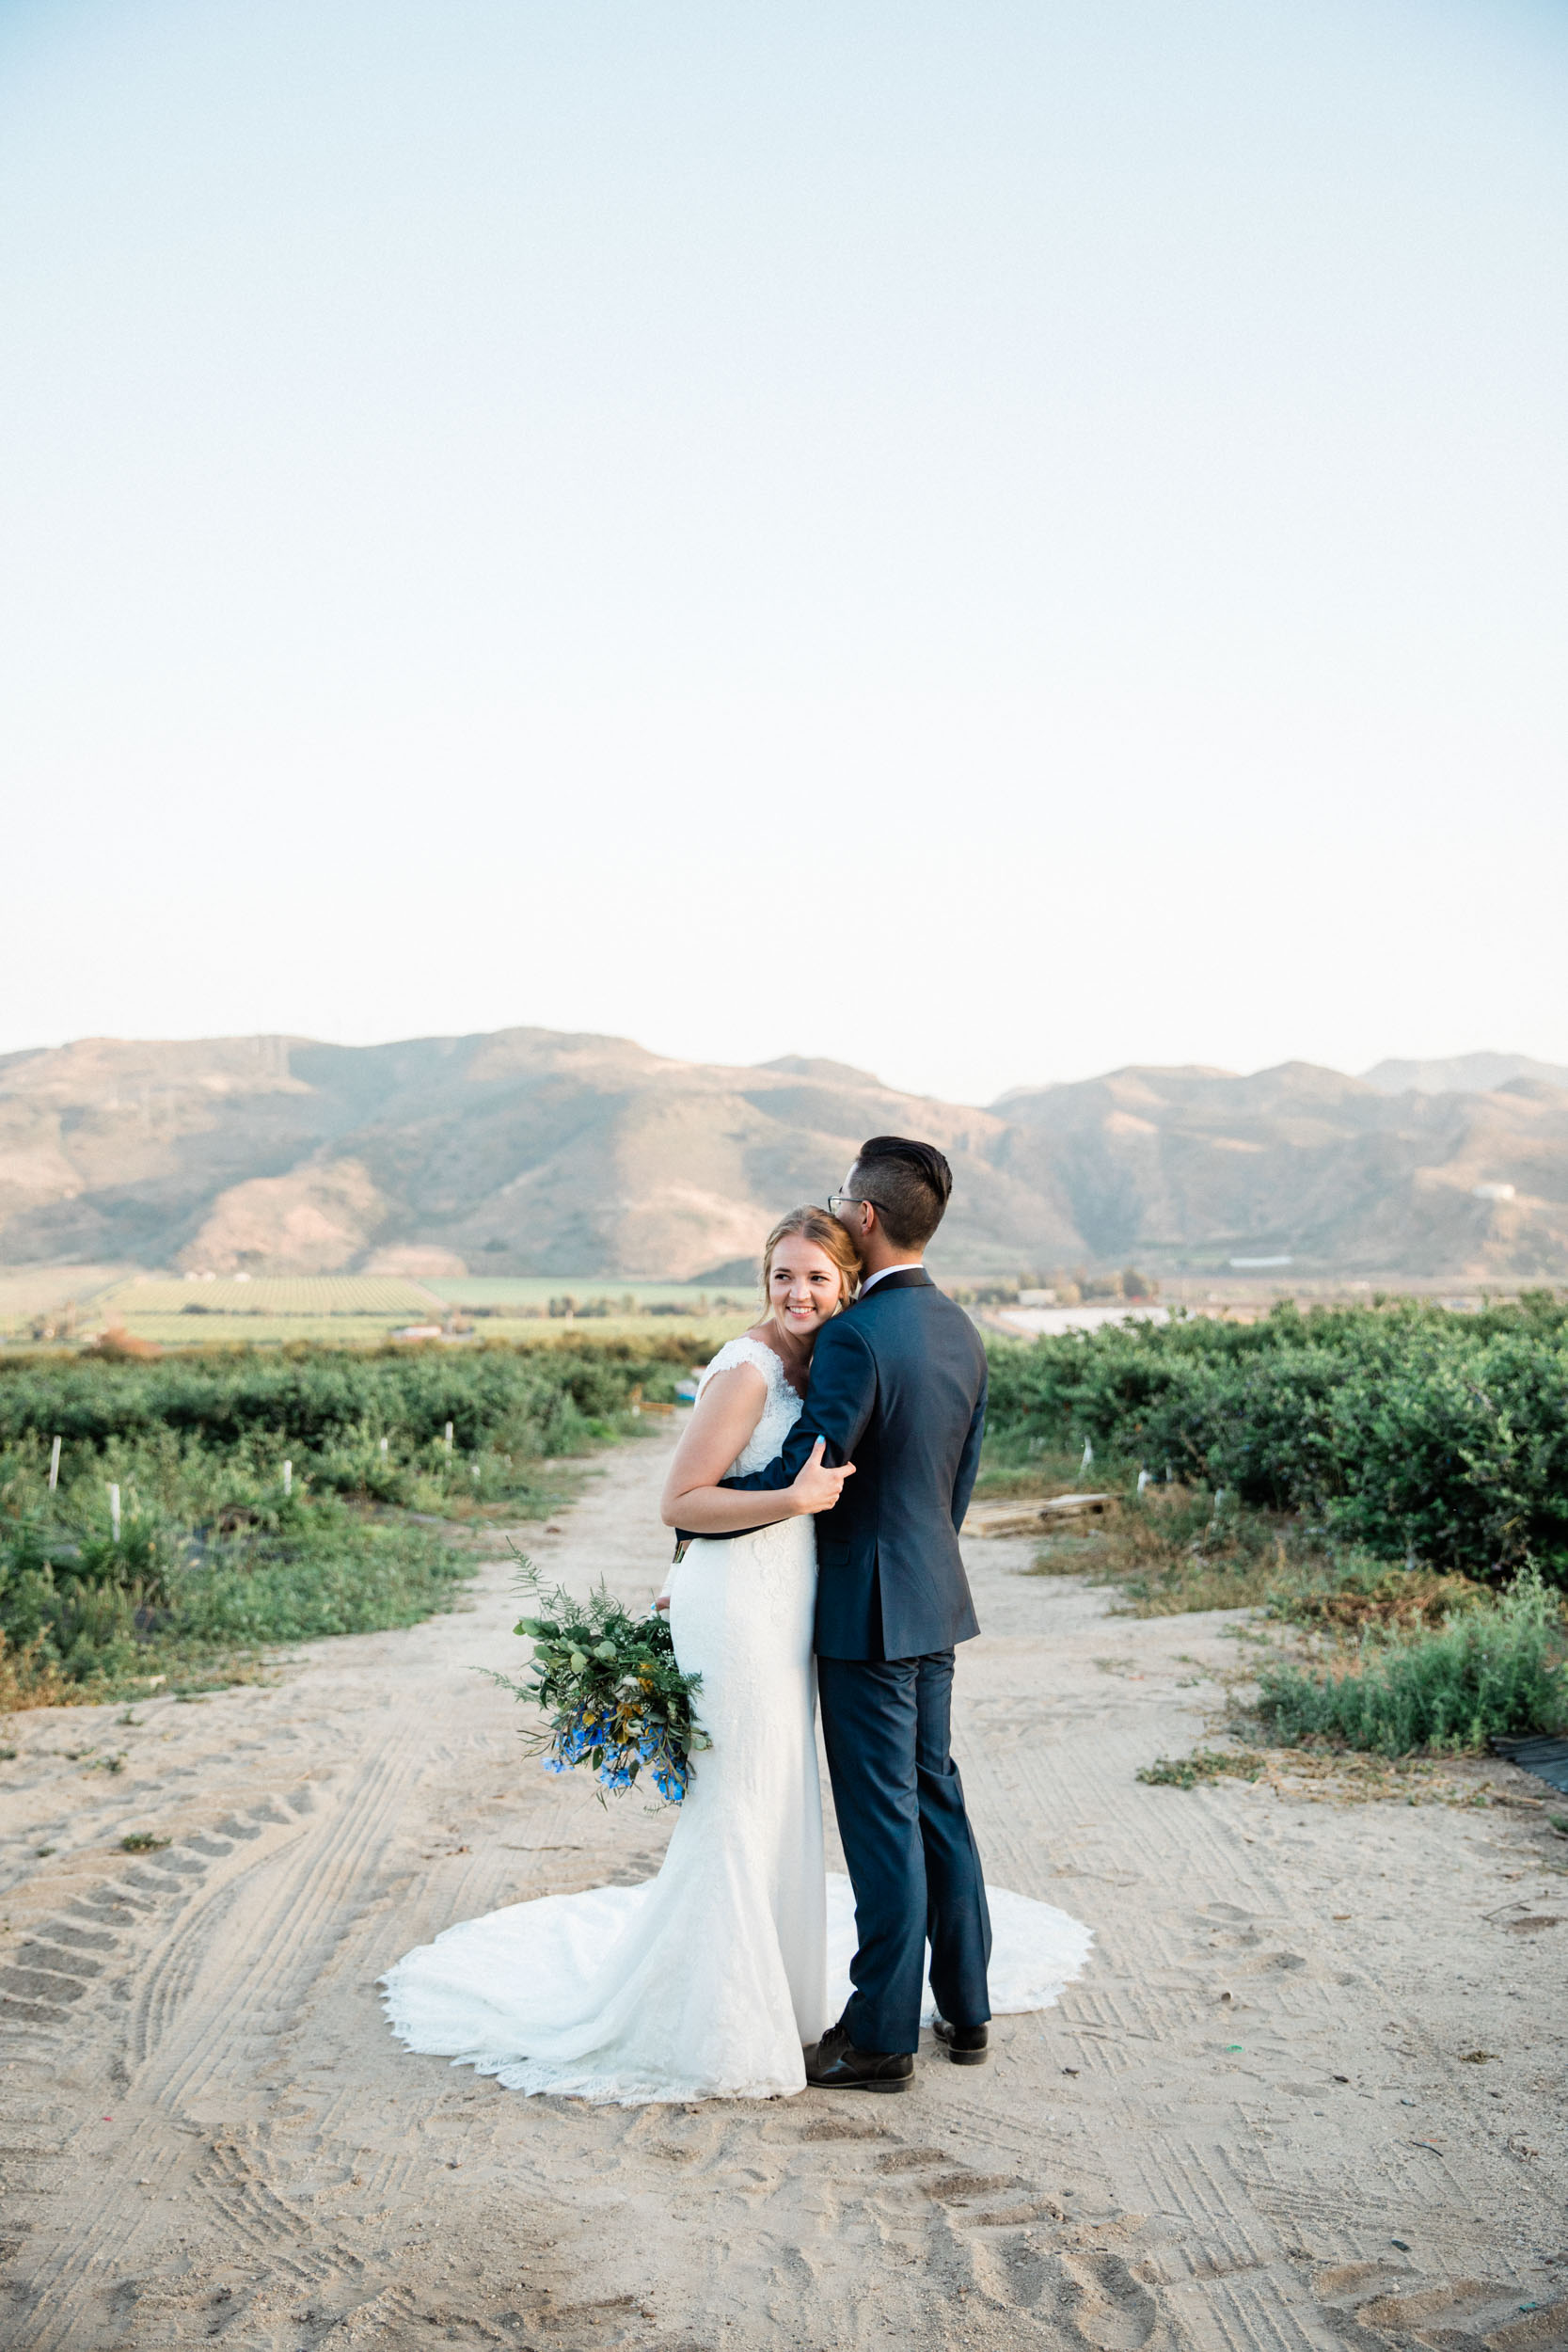 BKM-Photography-Gerry-Ranch-Southern-California-Wedding-0100.jpg